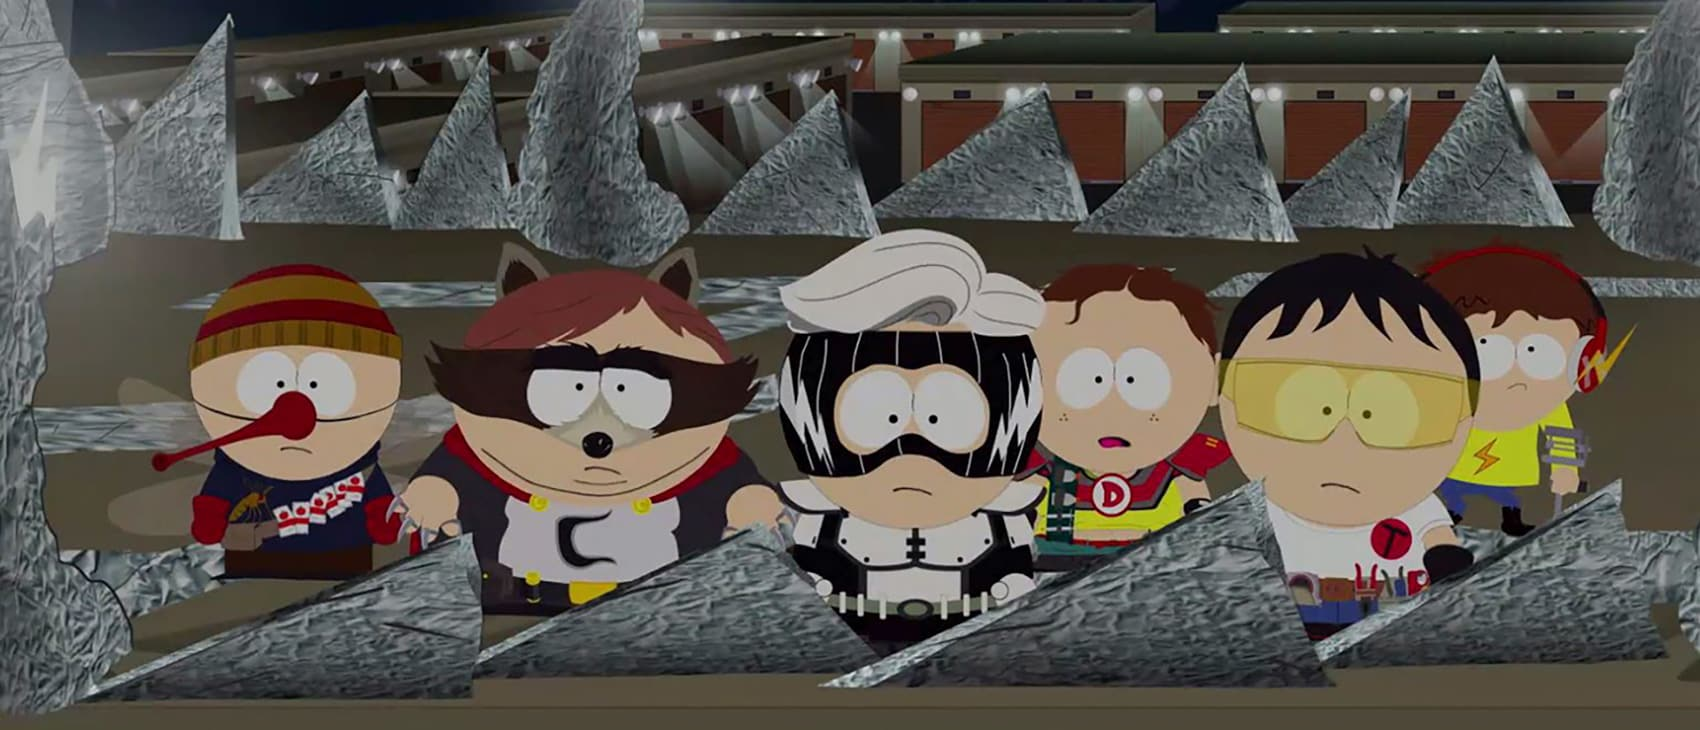 Новое дополнение для South Park: The Fractured but Whole